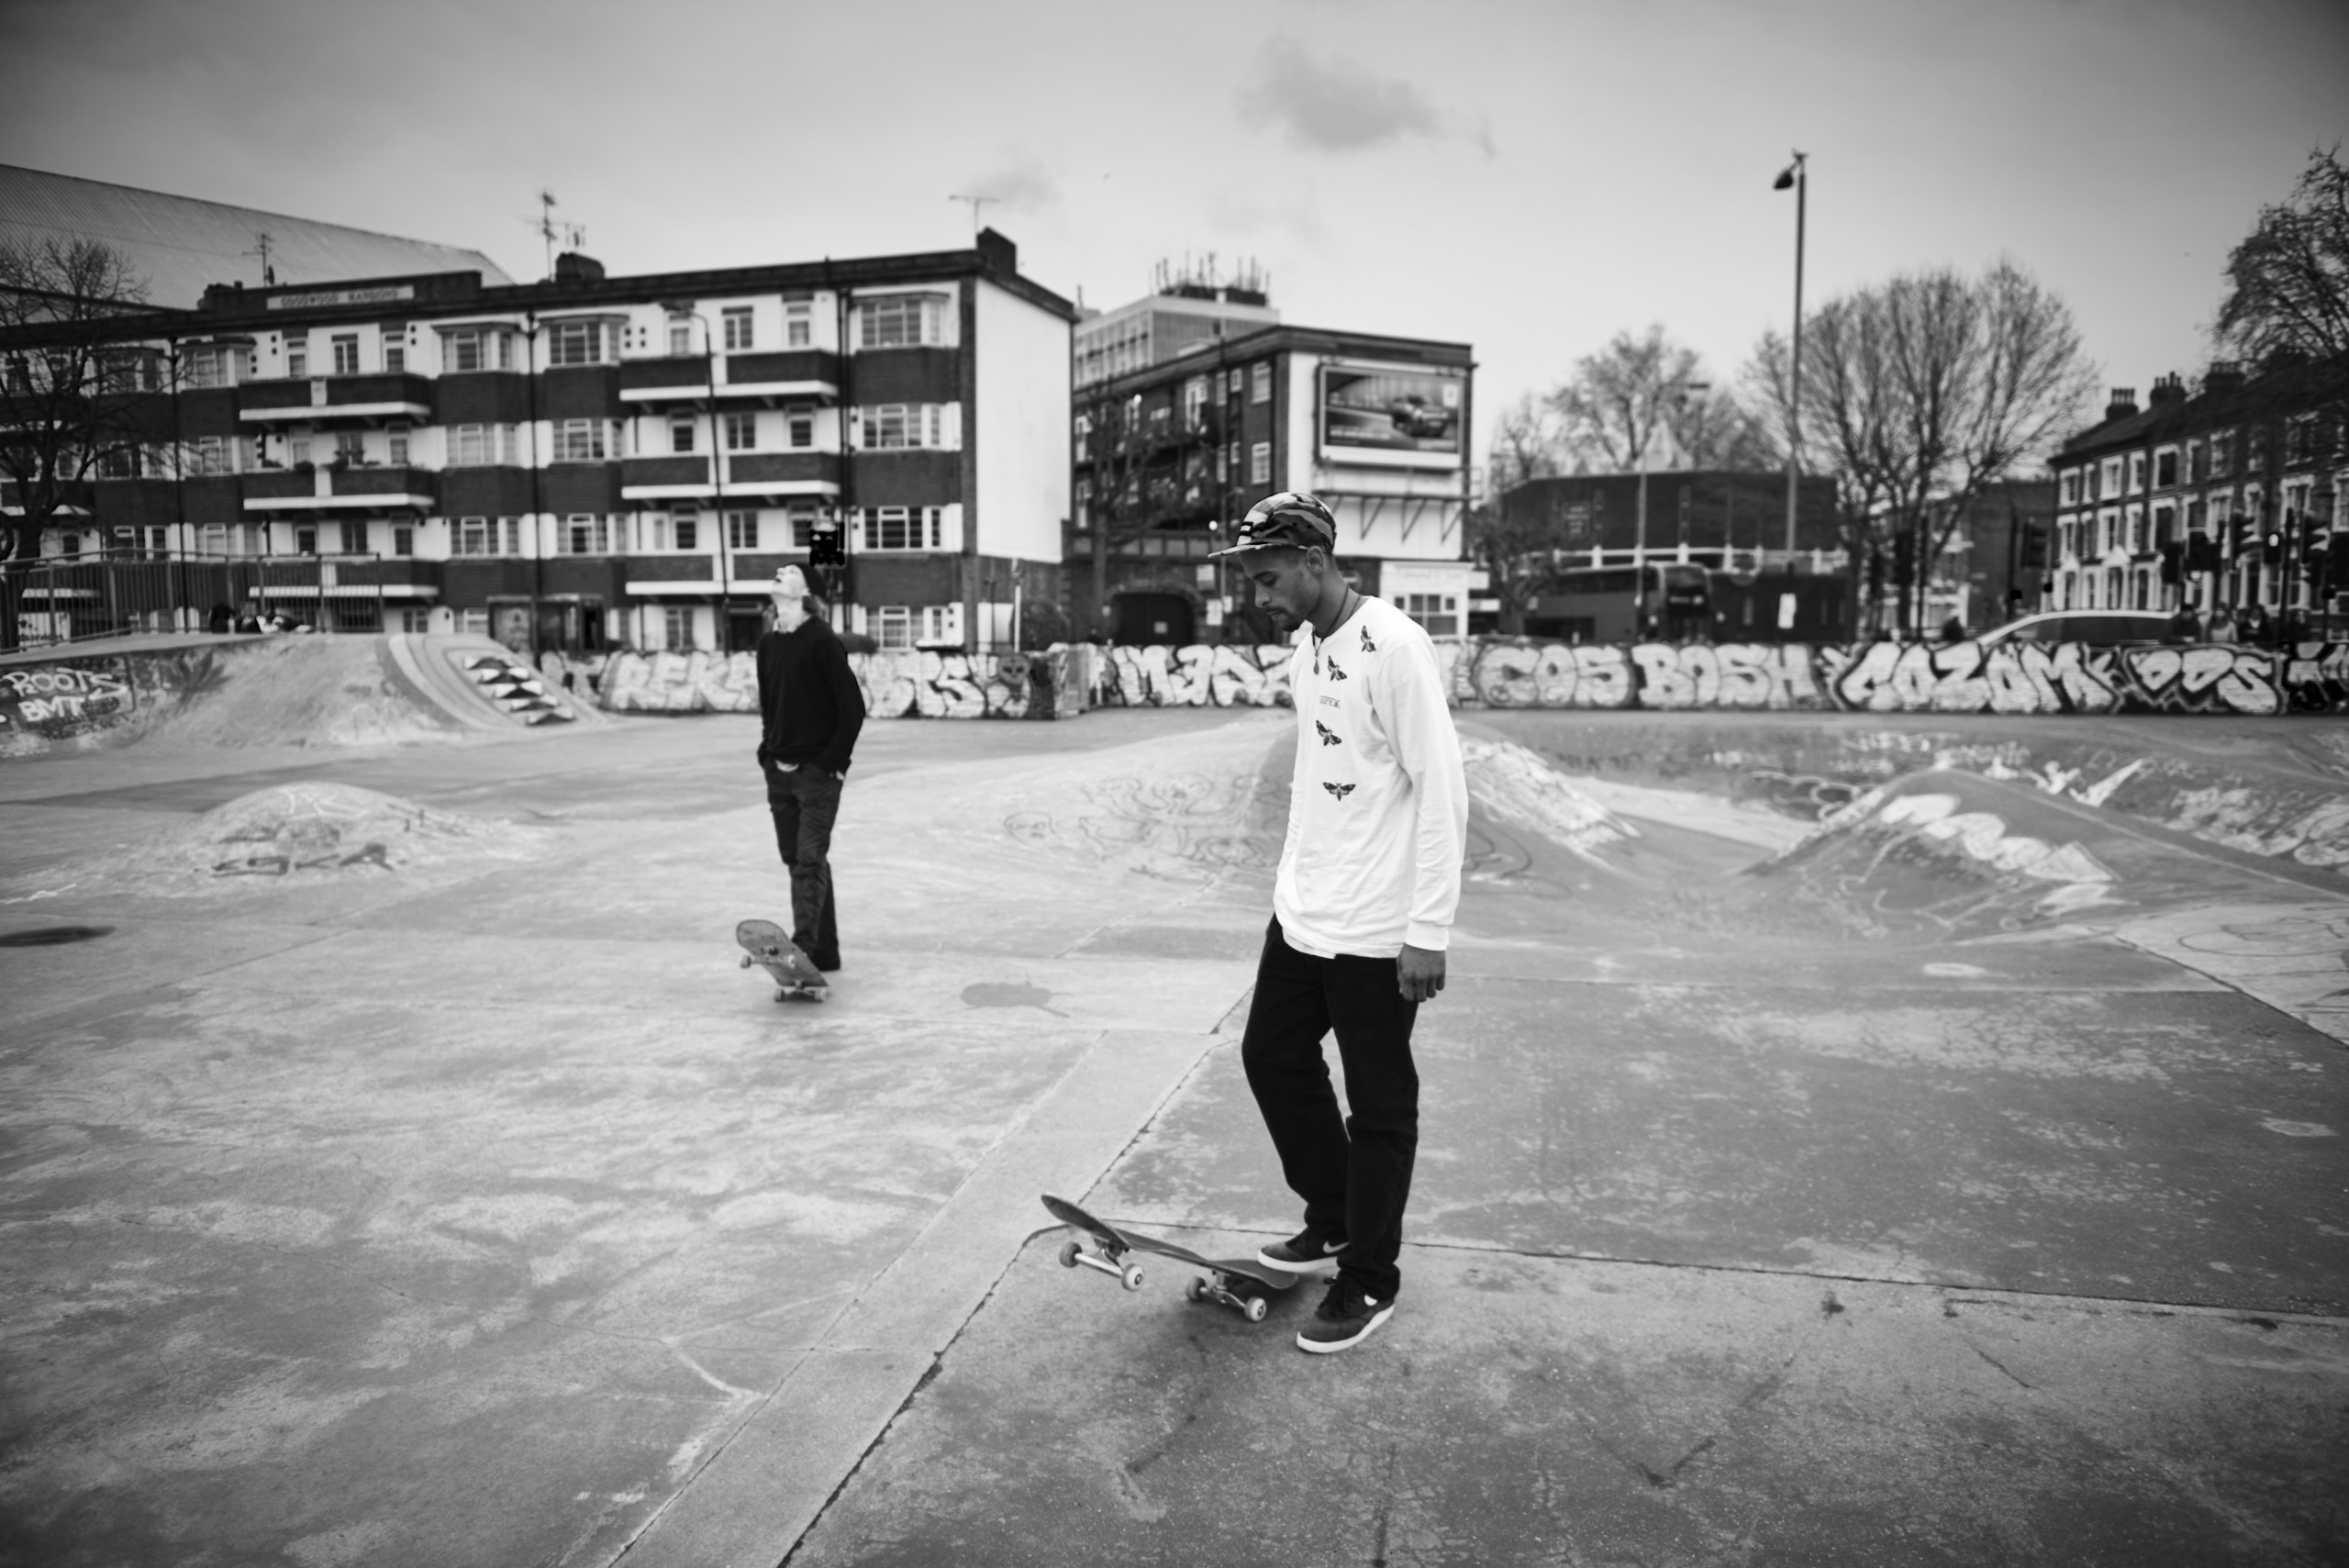 Brixton-skate-park-Matt-Stansfield-Lifestyle-Youth-Culture_19